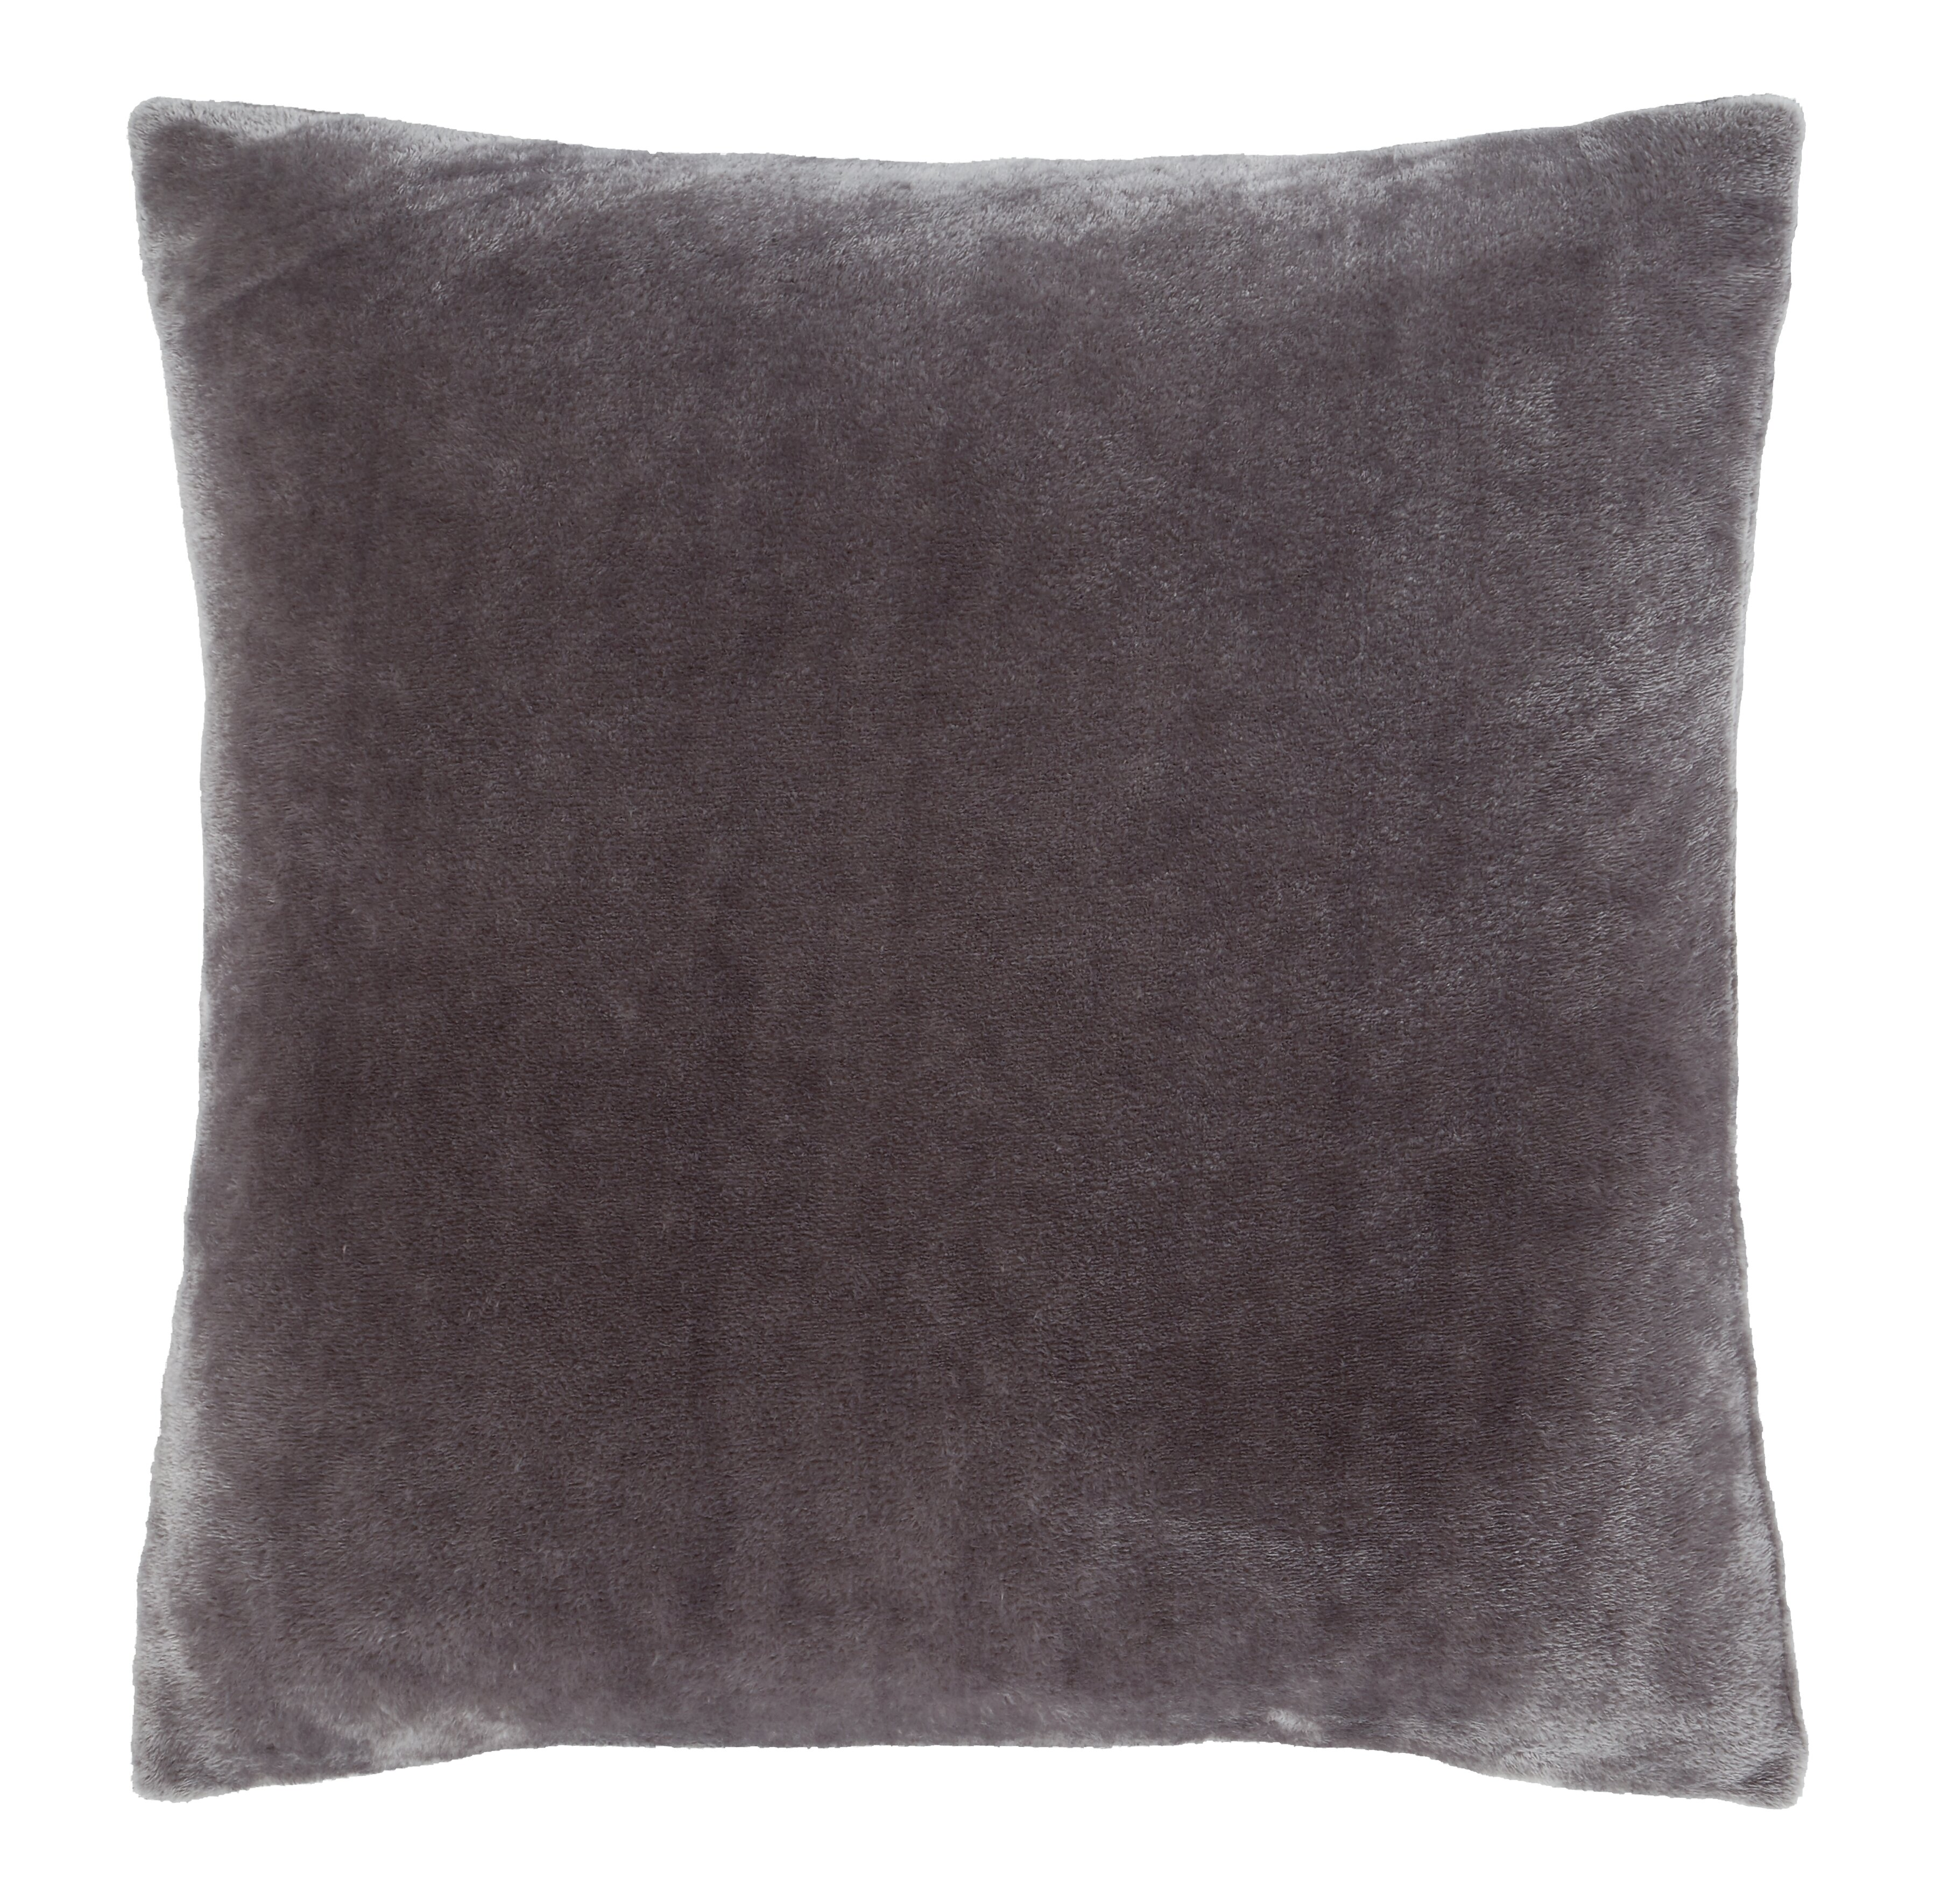 large 3 tone cushions covers or covers only Blush Pink Grey White